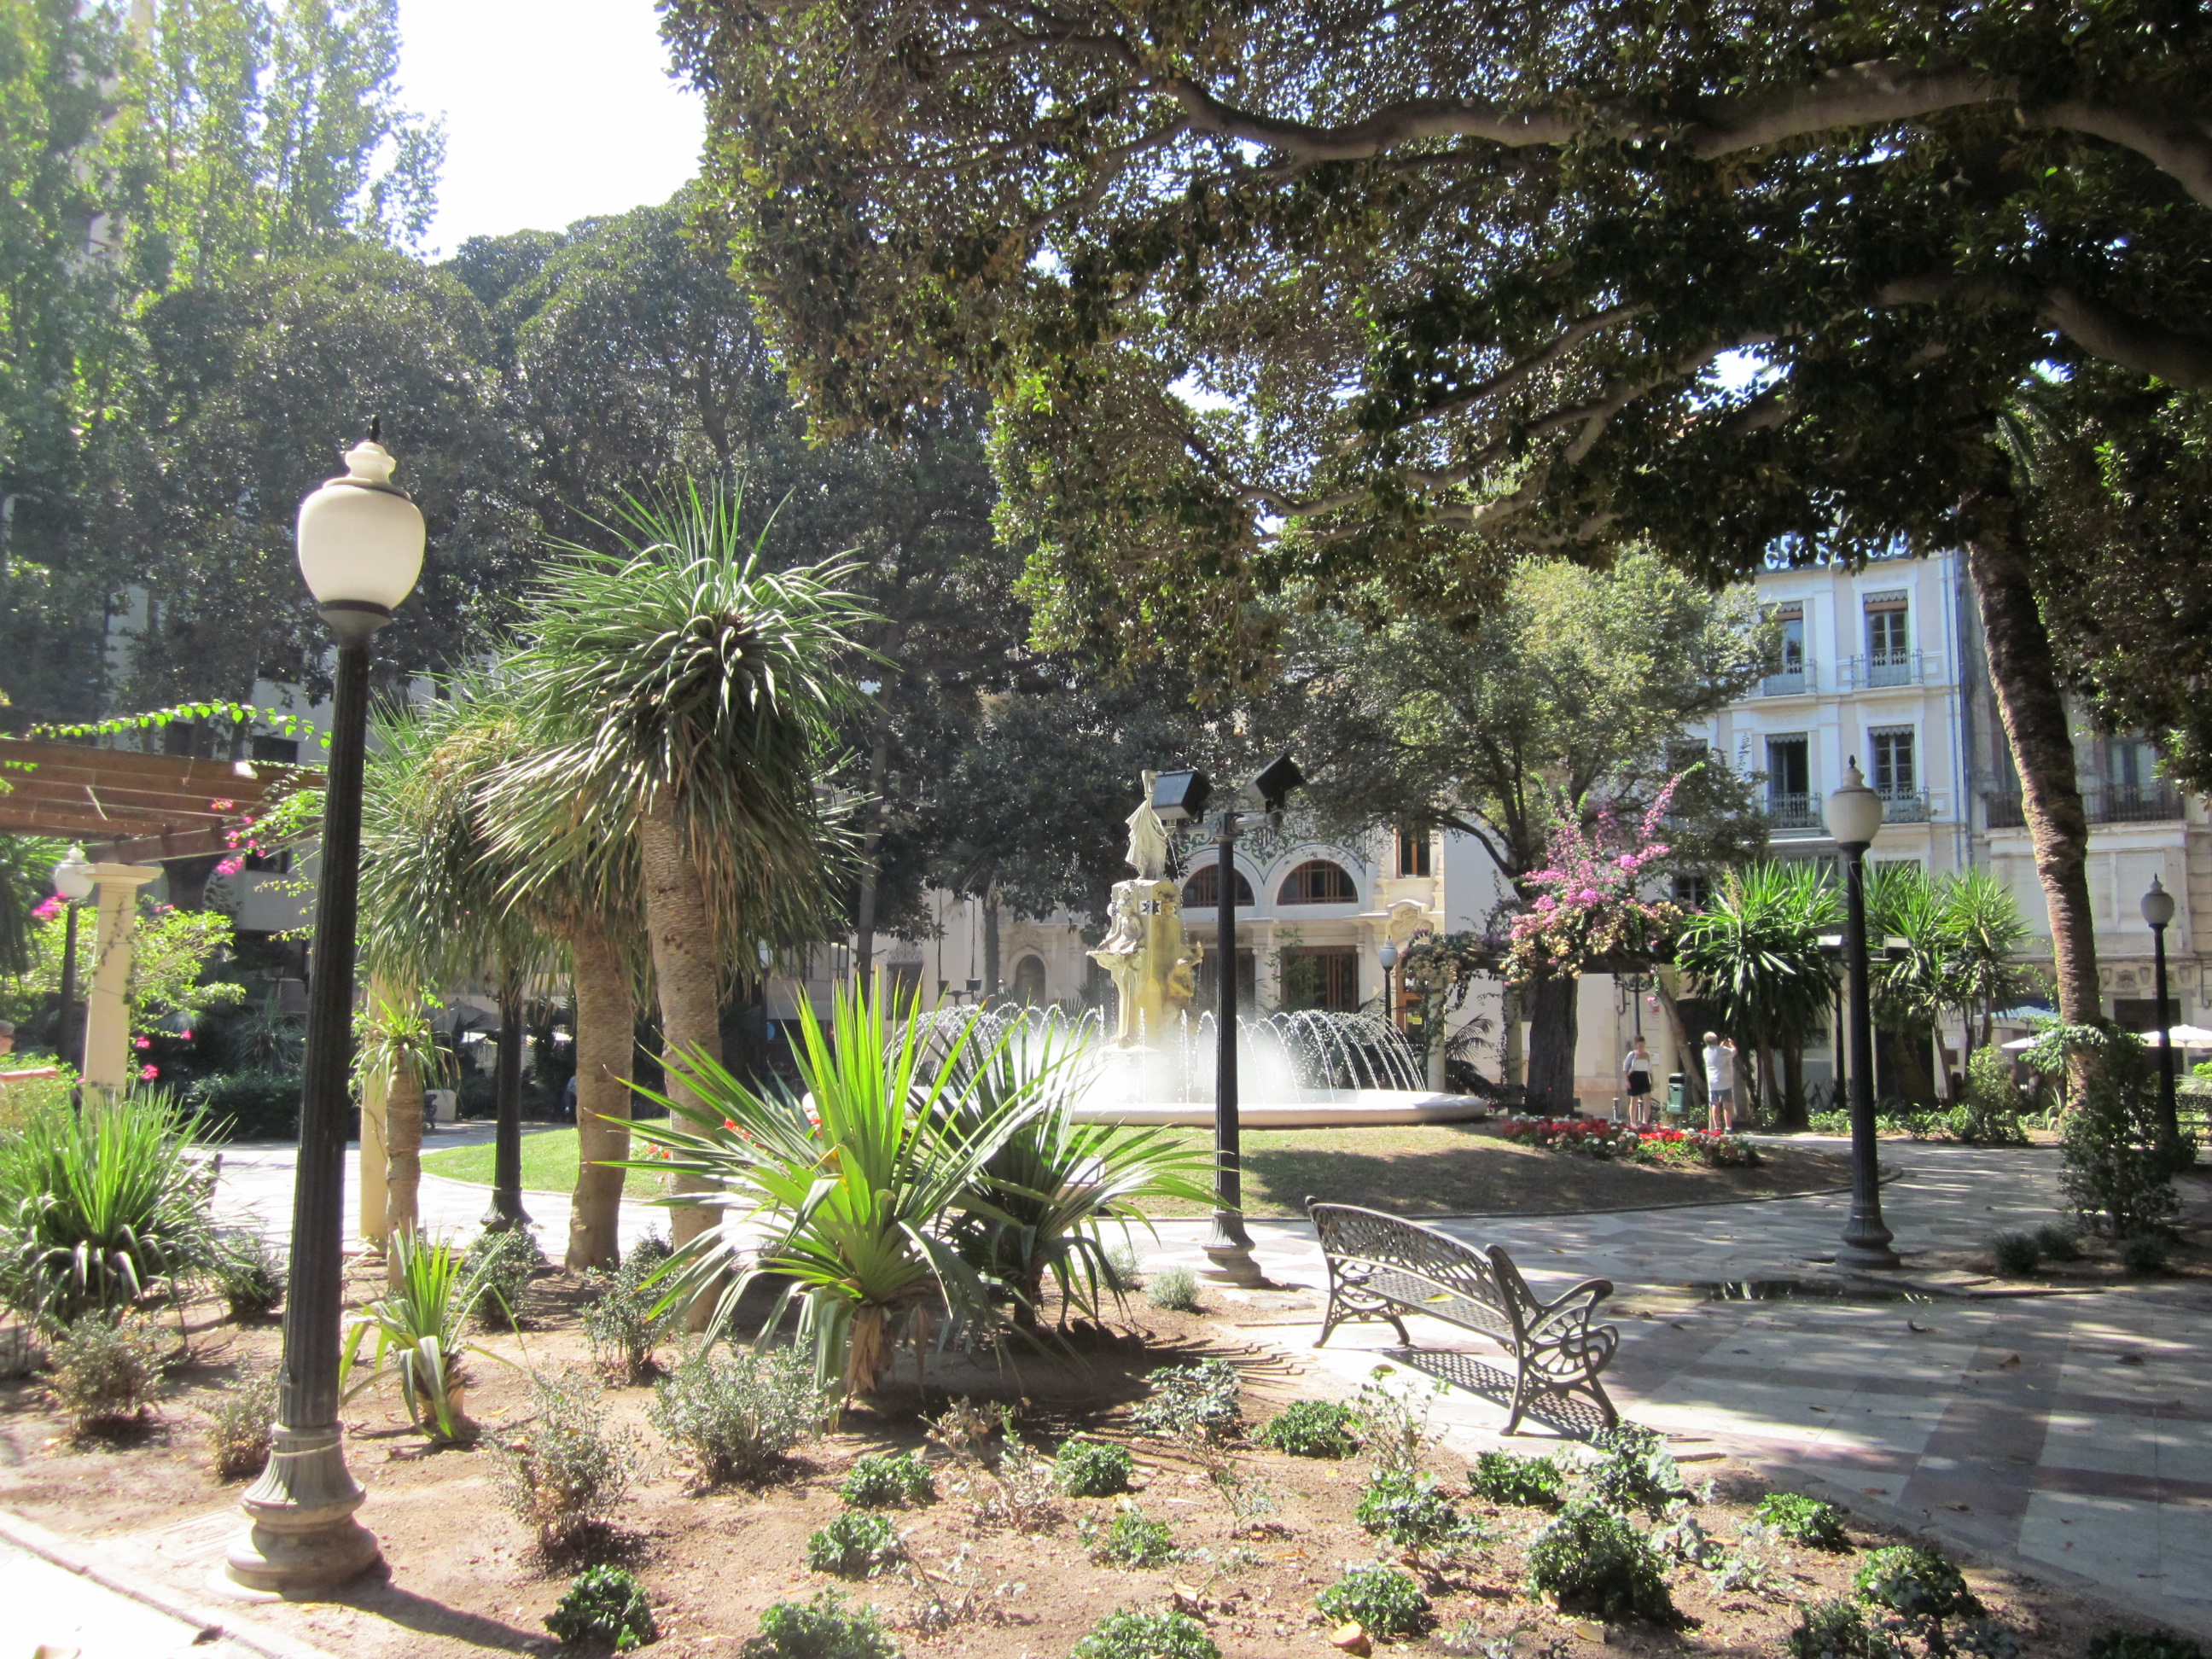 Green and Spacious Parks Of Alicante